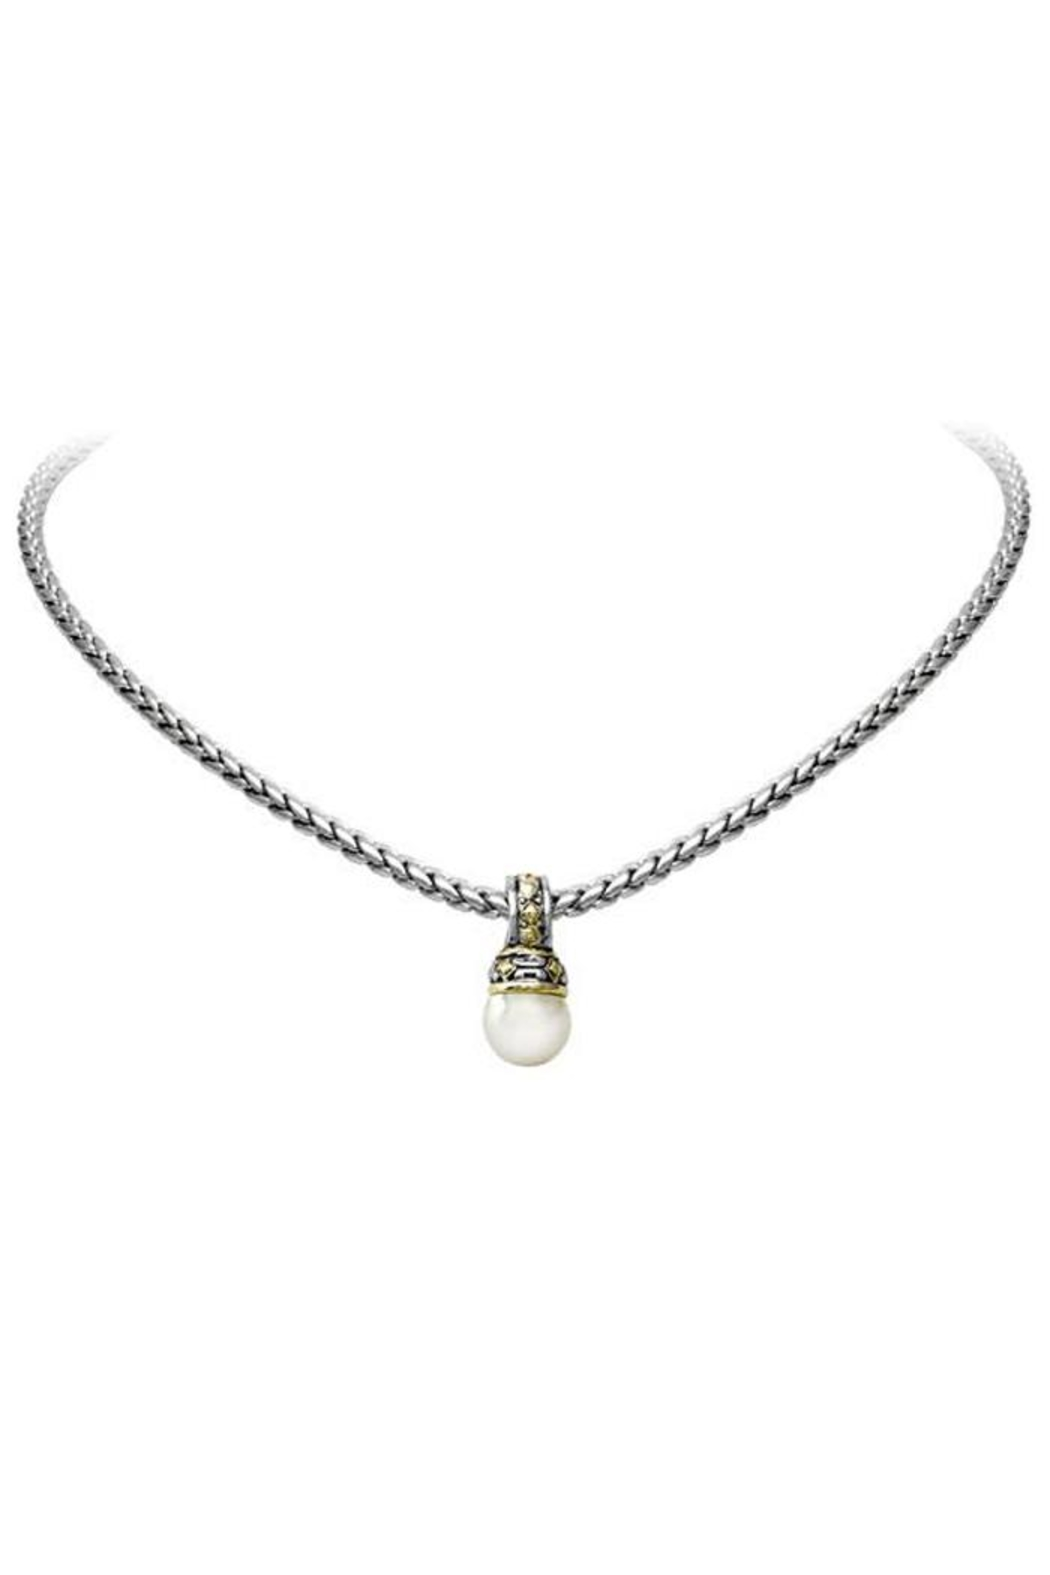 JOHN MEDEIROS Ocean-Images-Collection Pearl-Slider With-Chain-Necklace - Main Image